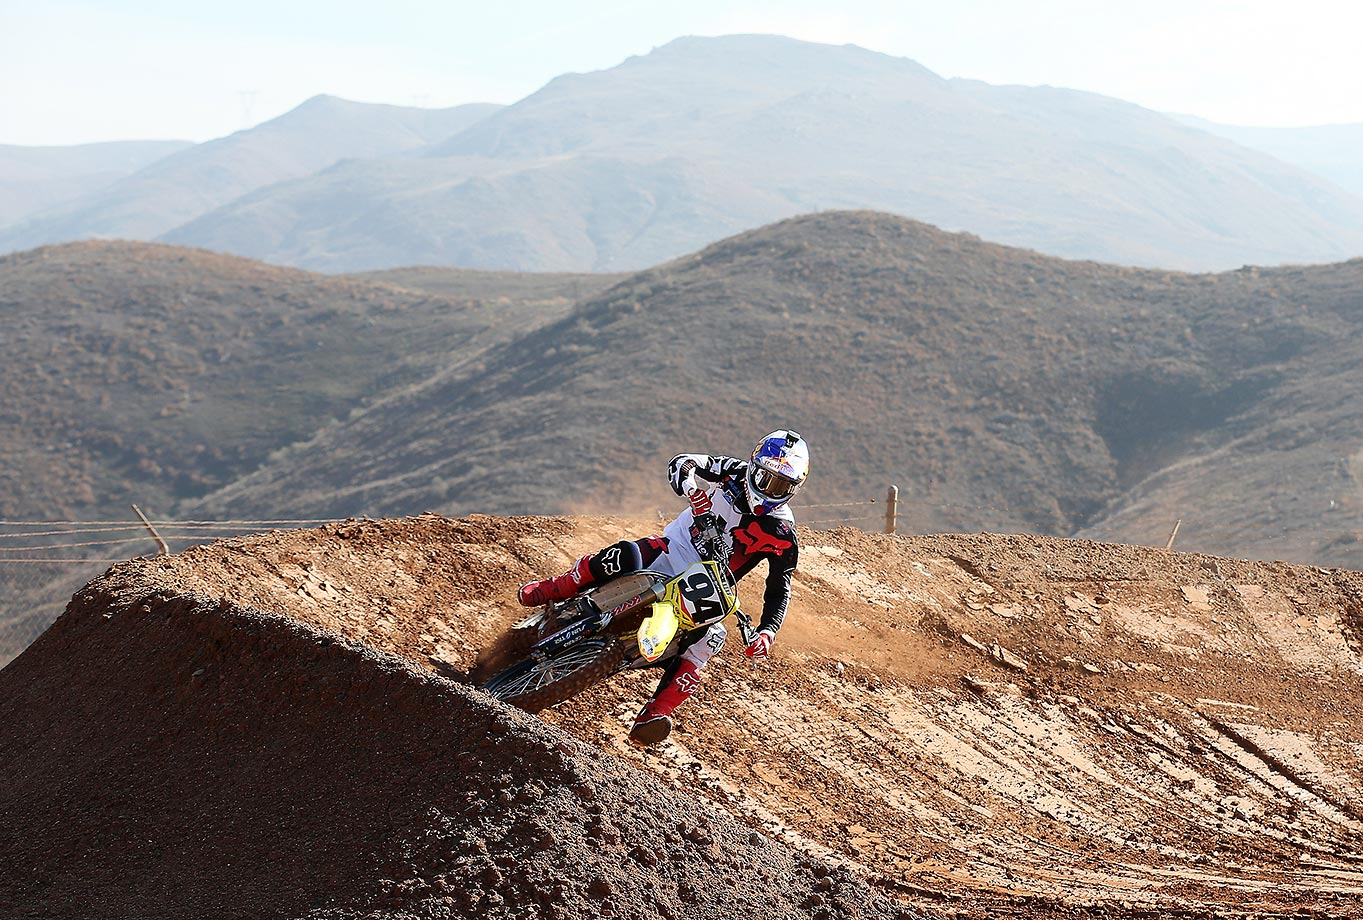 Ken Roczen hits the turn at the team practice facility in the hills of Corona, Calif.